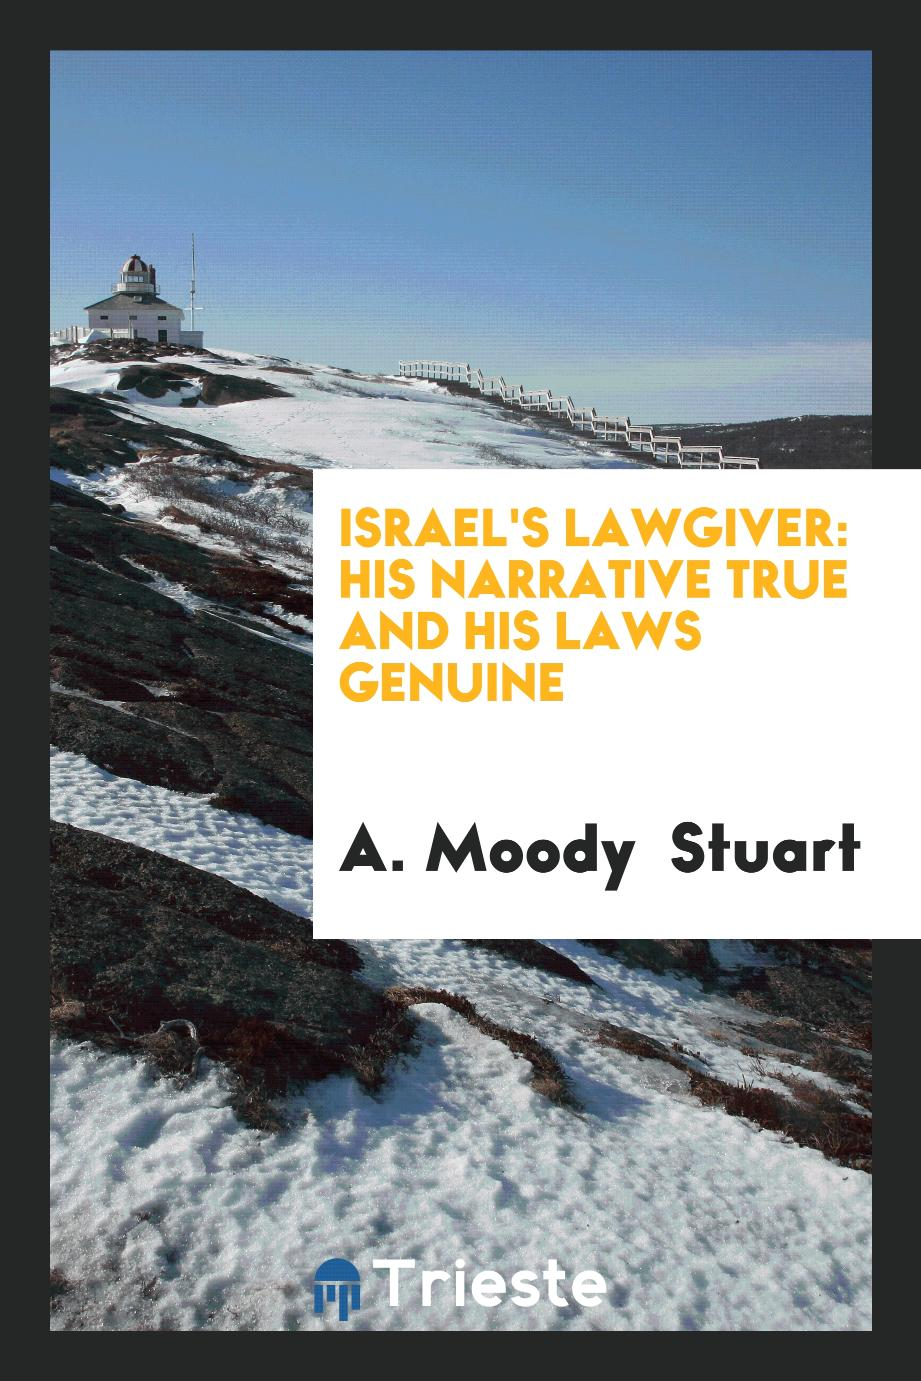 Israel's Lawgiver: His Narrative True and His Laws Genuine